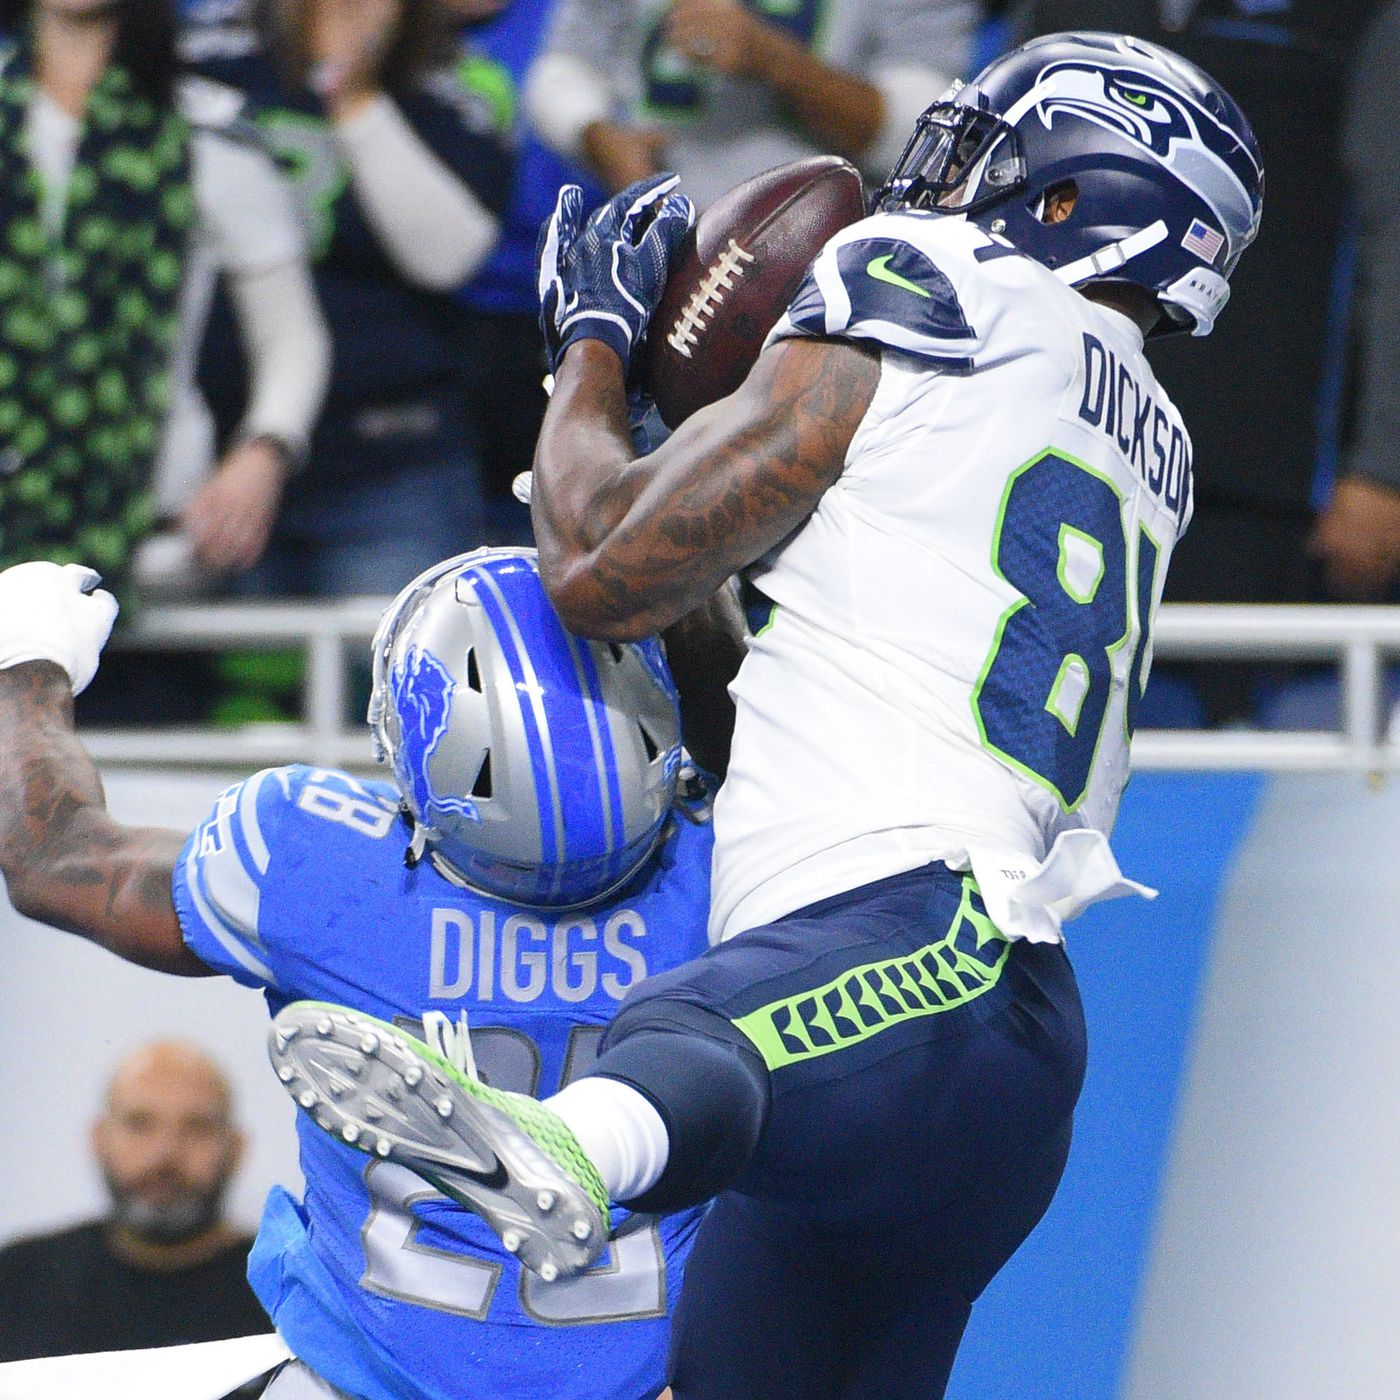 Lions Seahawks Final Score Recap Lions Drop Sloppy Game To Seahawks 28 14 Pride Of Detroit